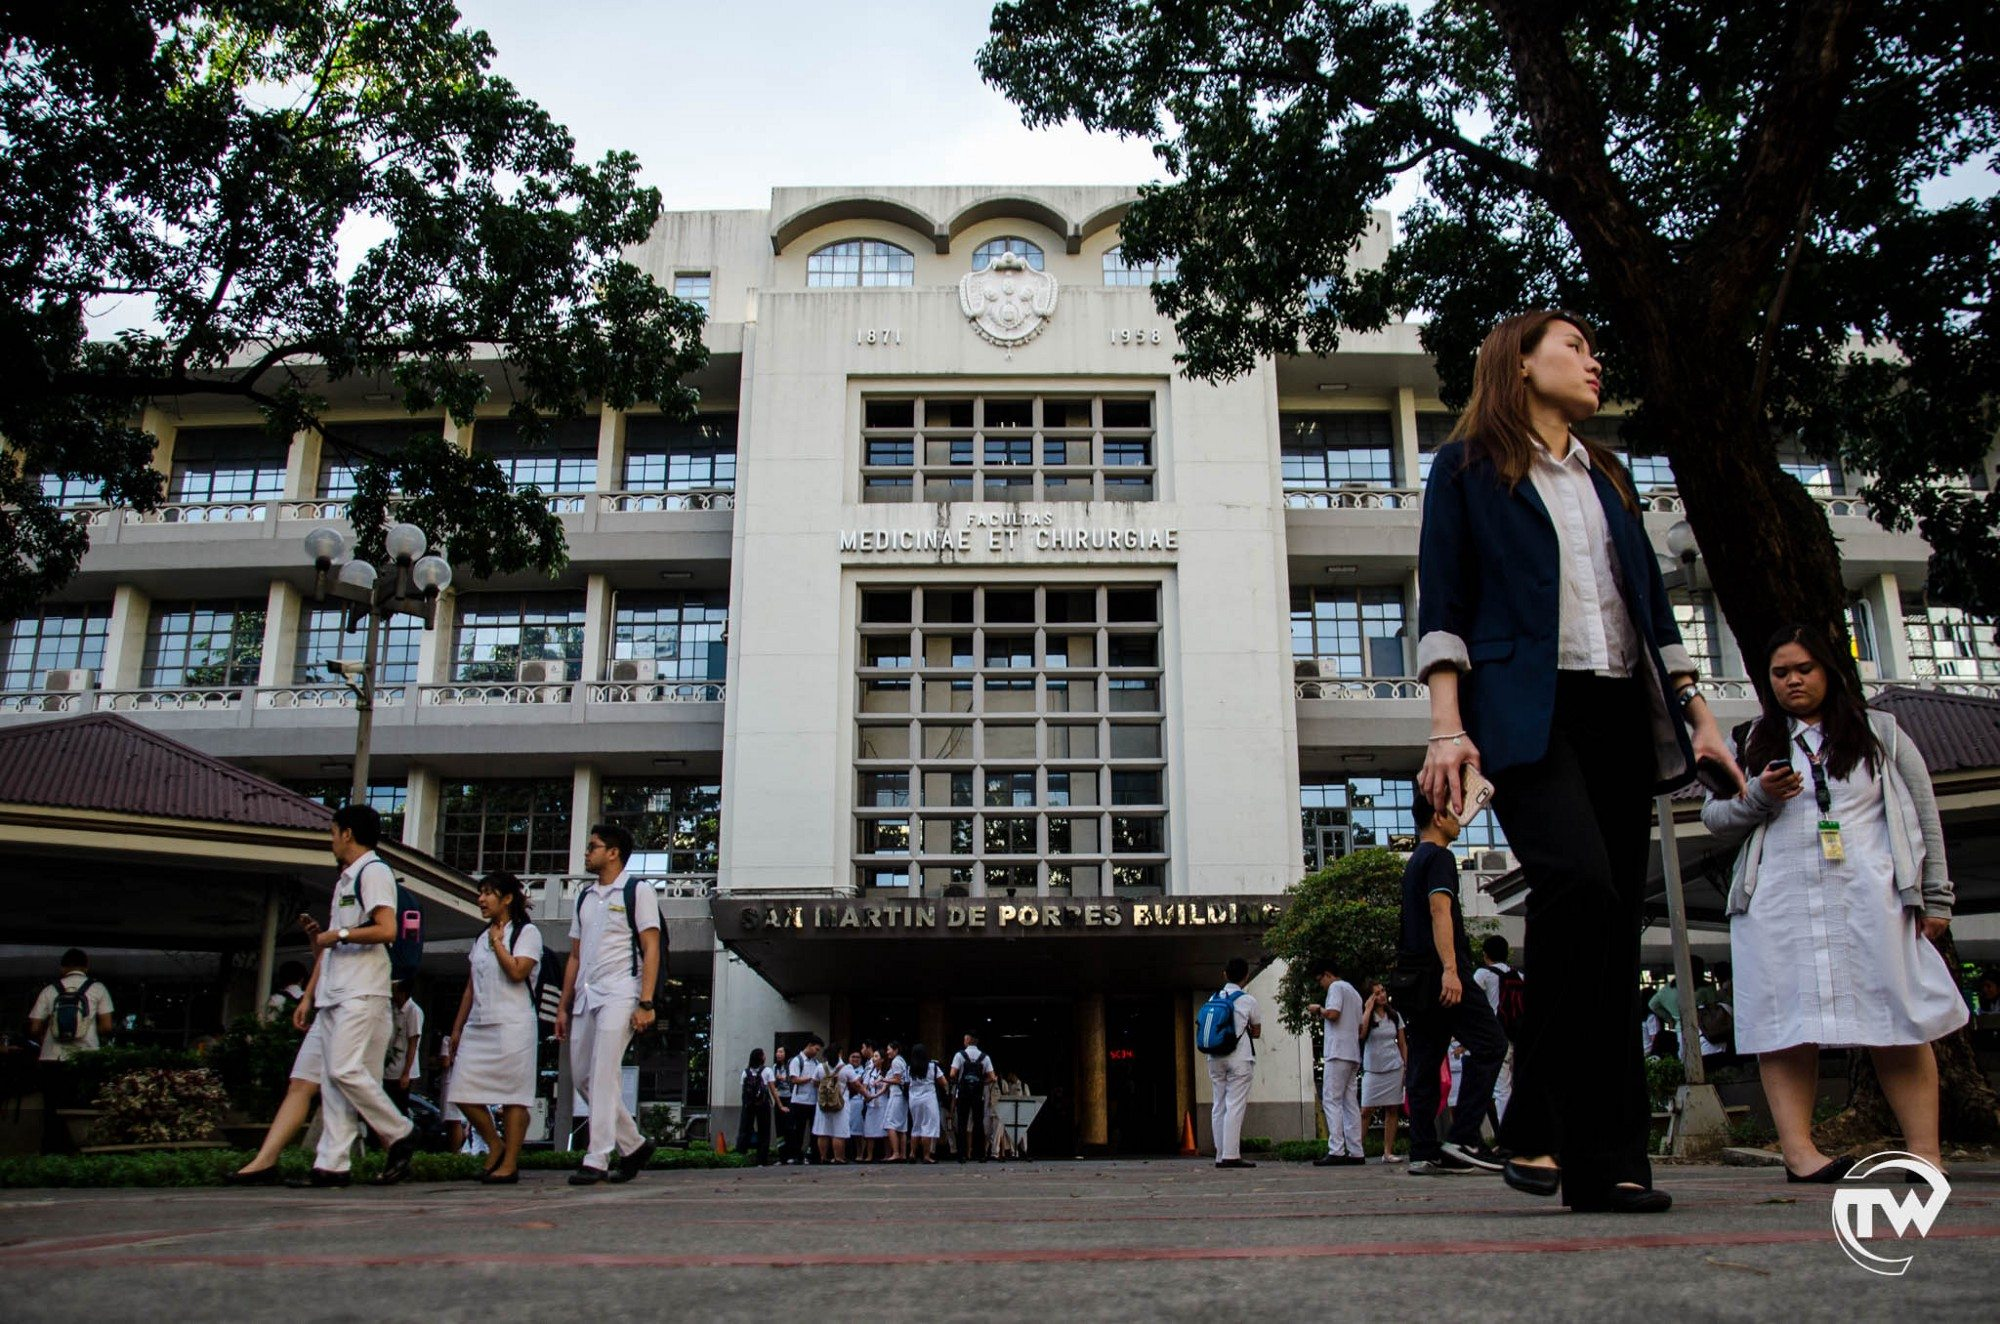 Ust Maintains Top Performing School Ranking In November 2017 Nursing Bosing Bulat The Faculty Of Medicine And Surgery Posted A 100 Percent Passing Rate With 12 Thomasians Landing 10 Highest Scorers